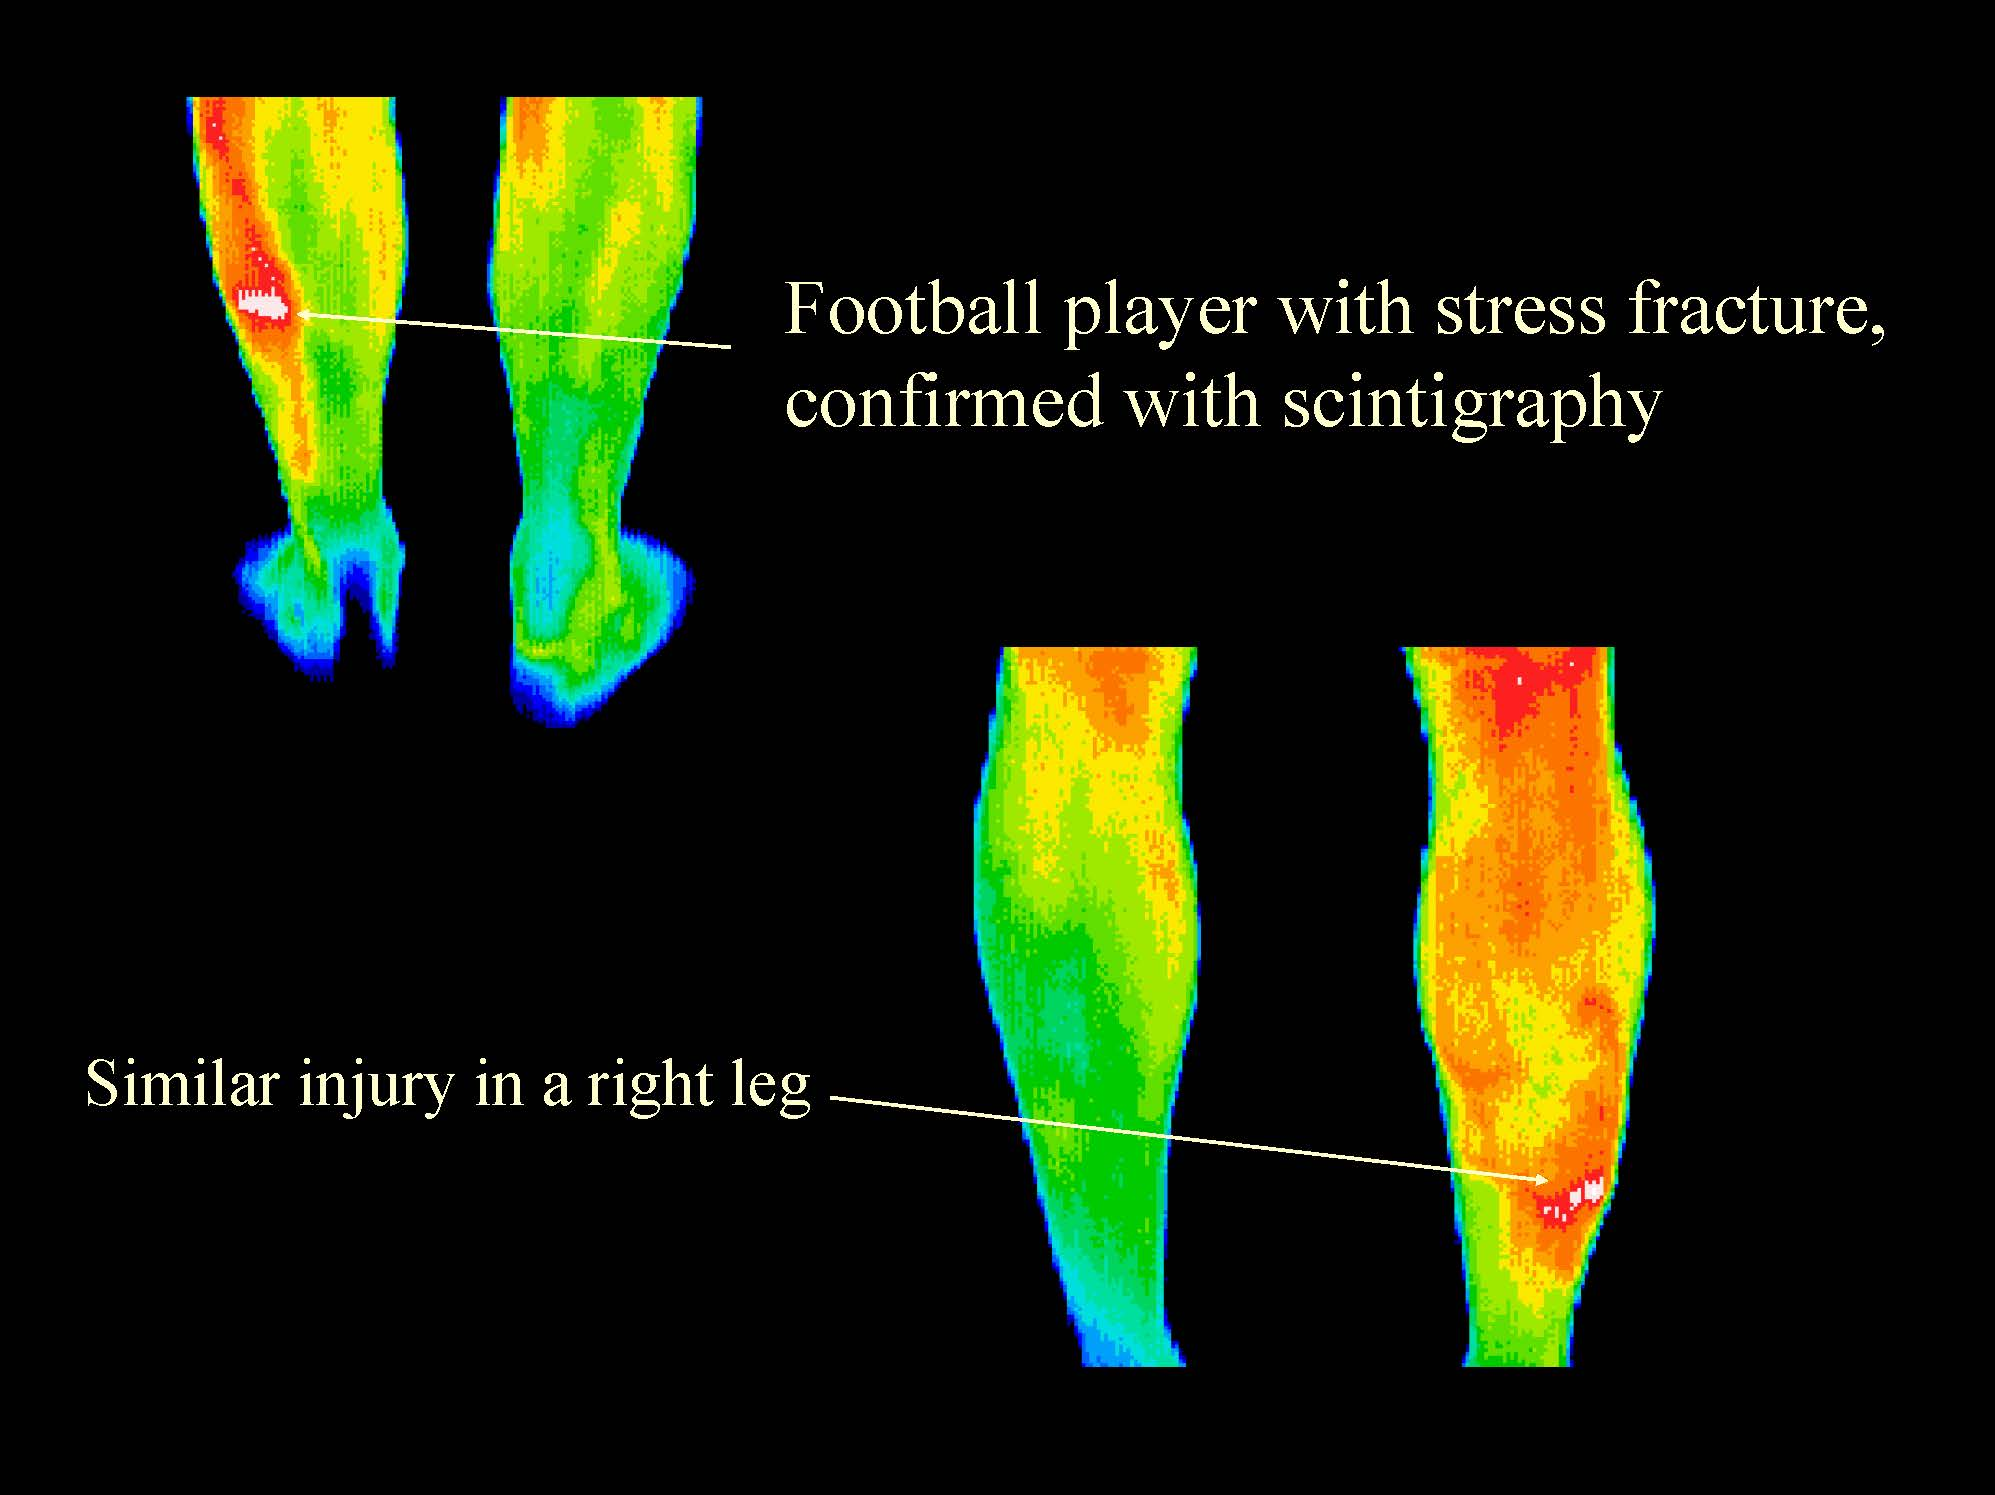 Conditions-and-Injuries_Page_10 (1).jpg